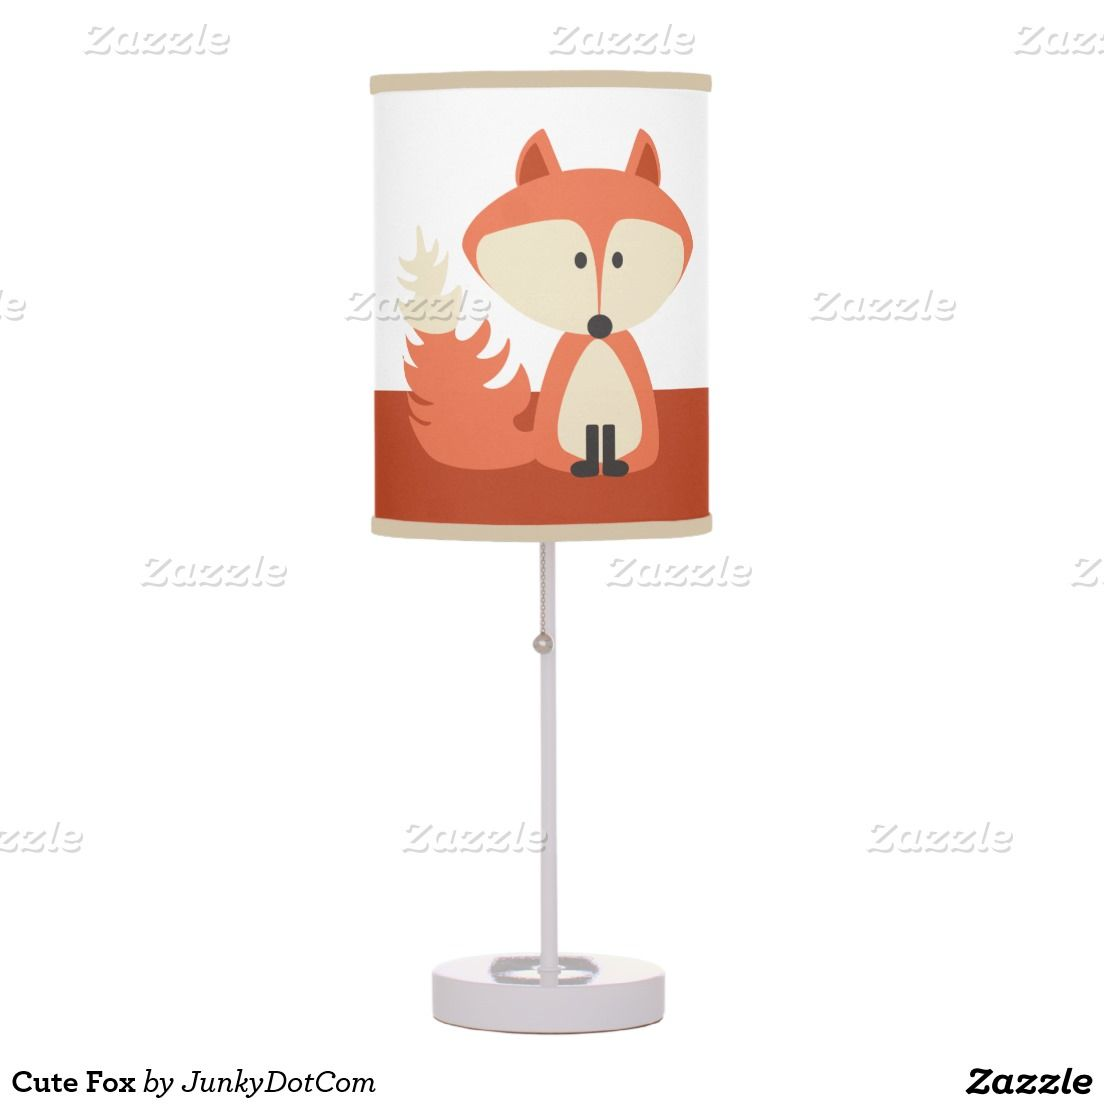 Cute Fox Table Lamp - Feb 28